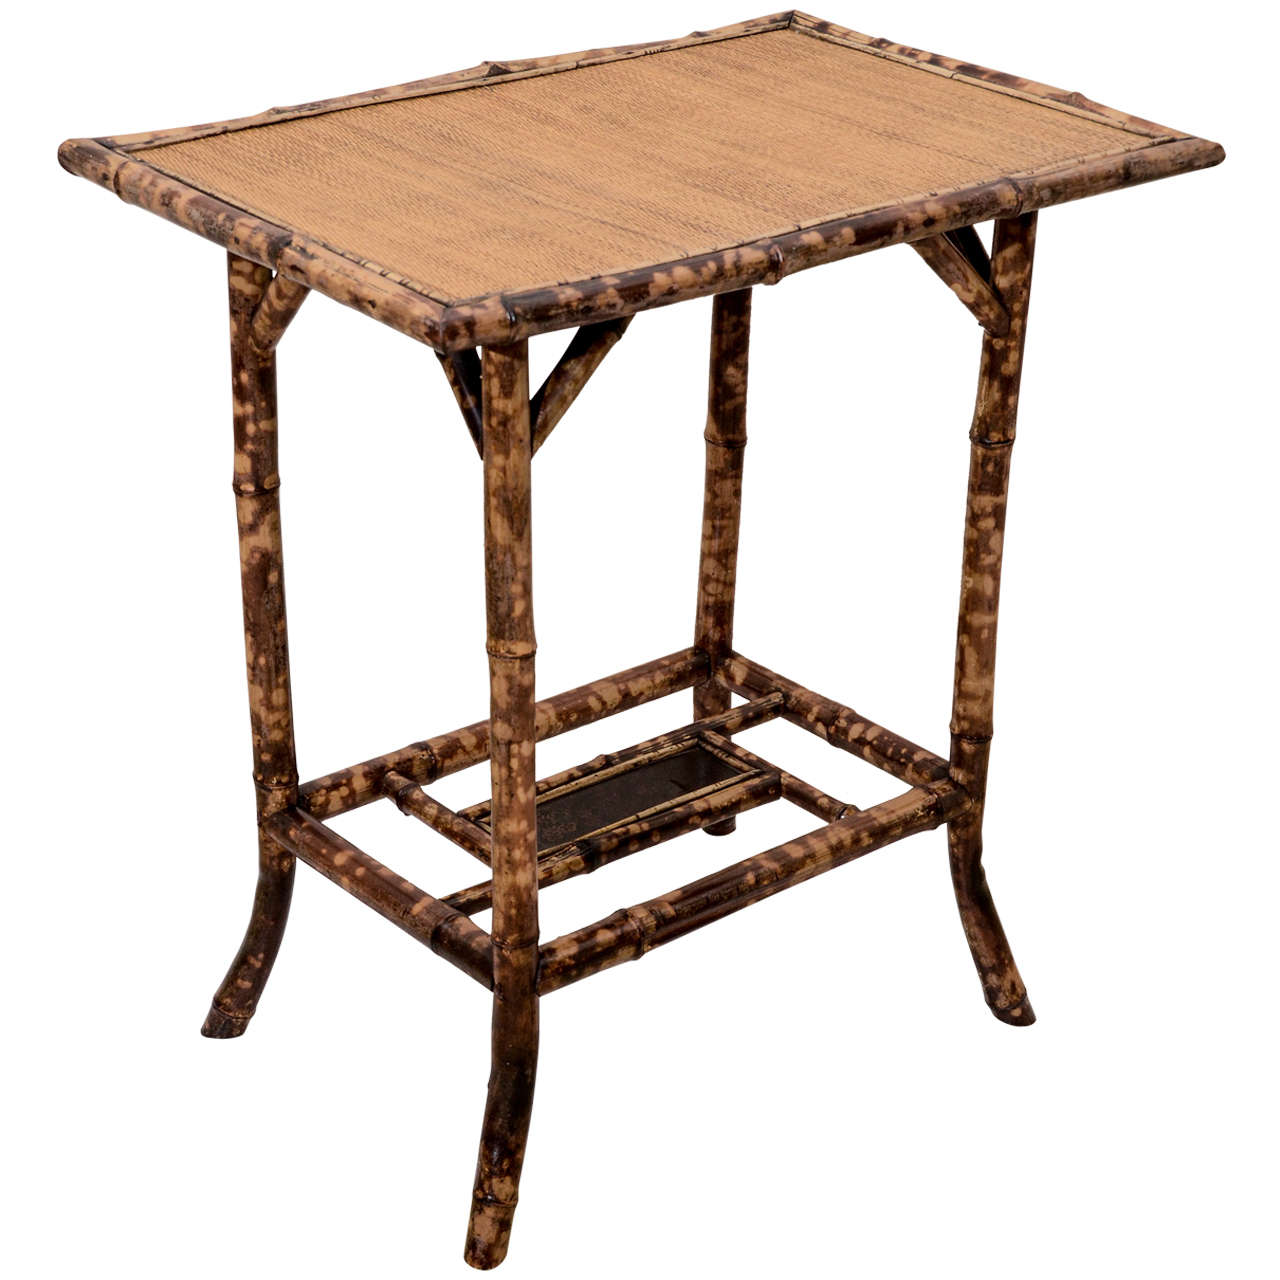 Bamboo Tortoise Coffee Table: Tortoise Shell Finish Bamboo Grasscloth Top Table At 1stdibs